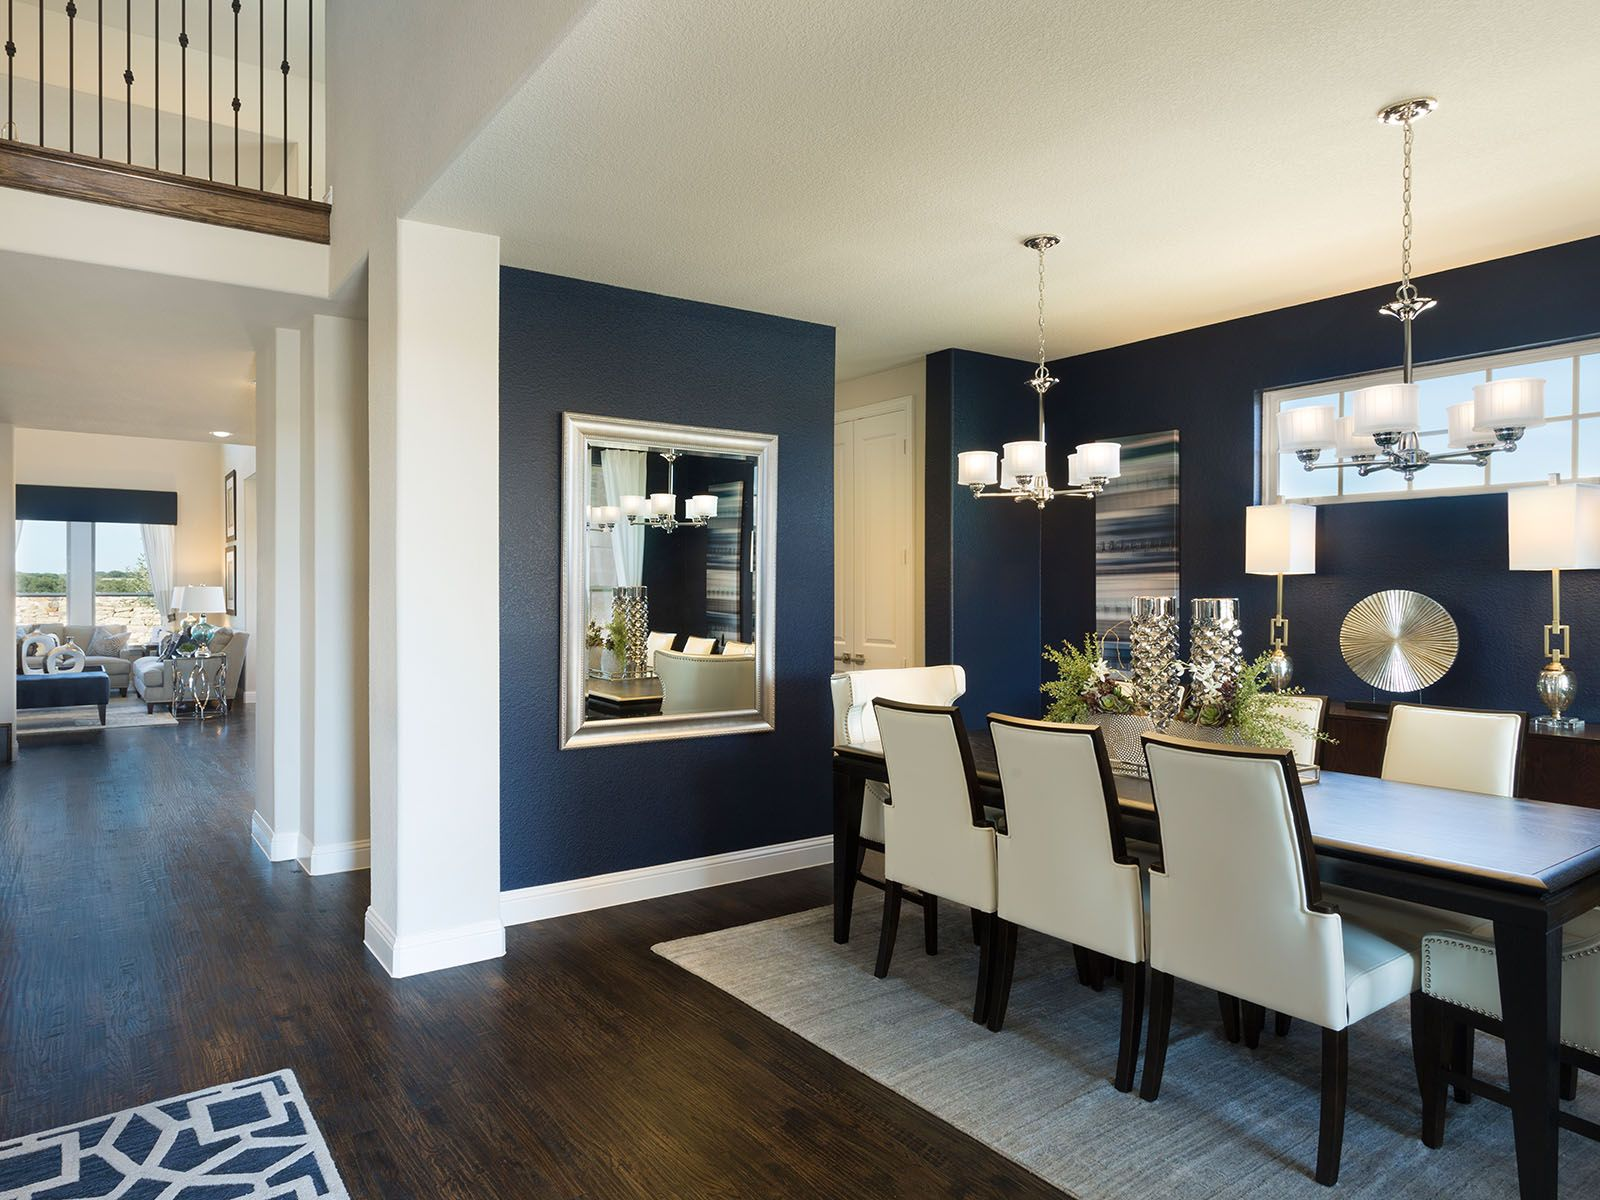 Meritage homes model home lantana beautiful navy walls for Model home dining room